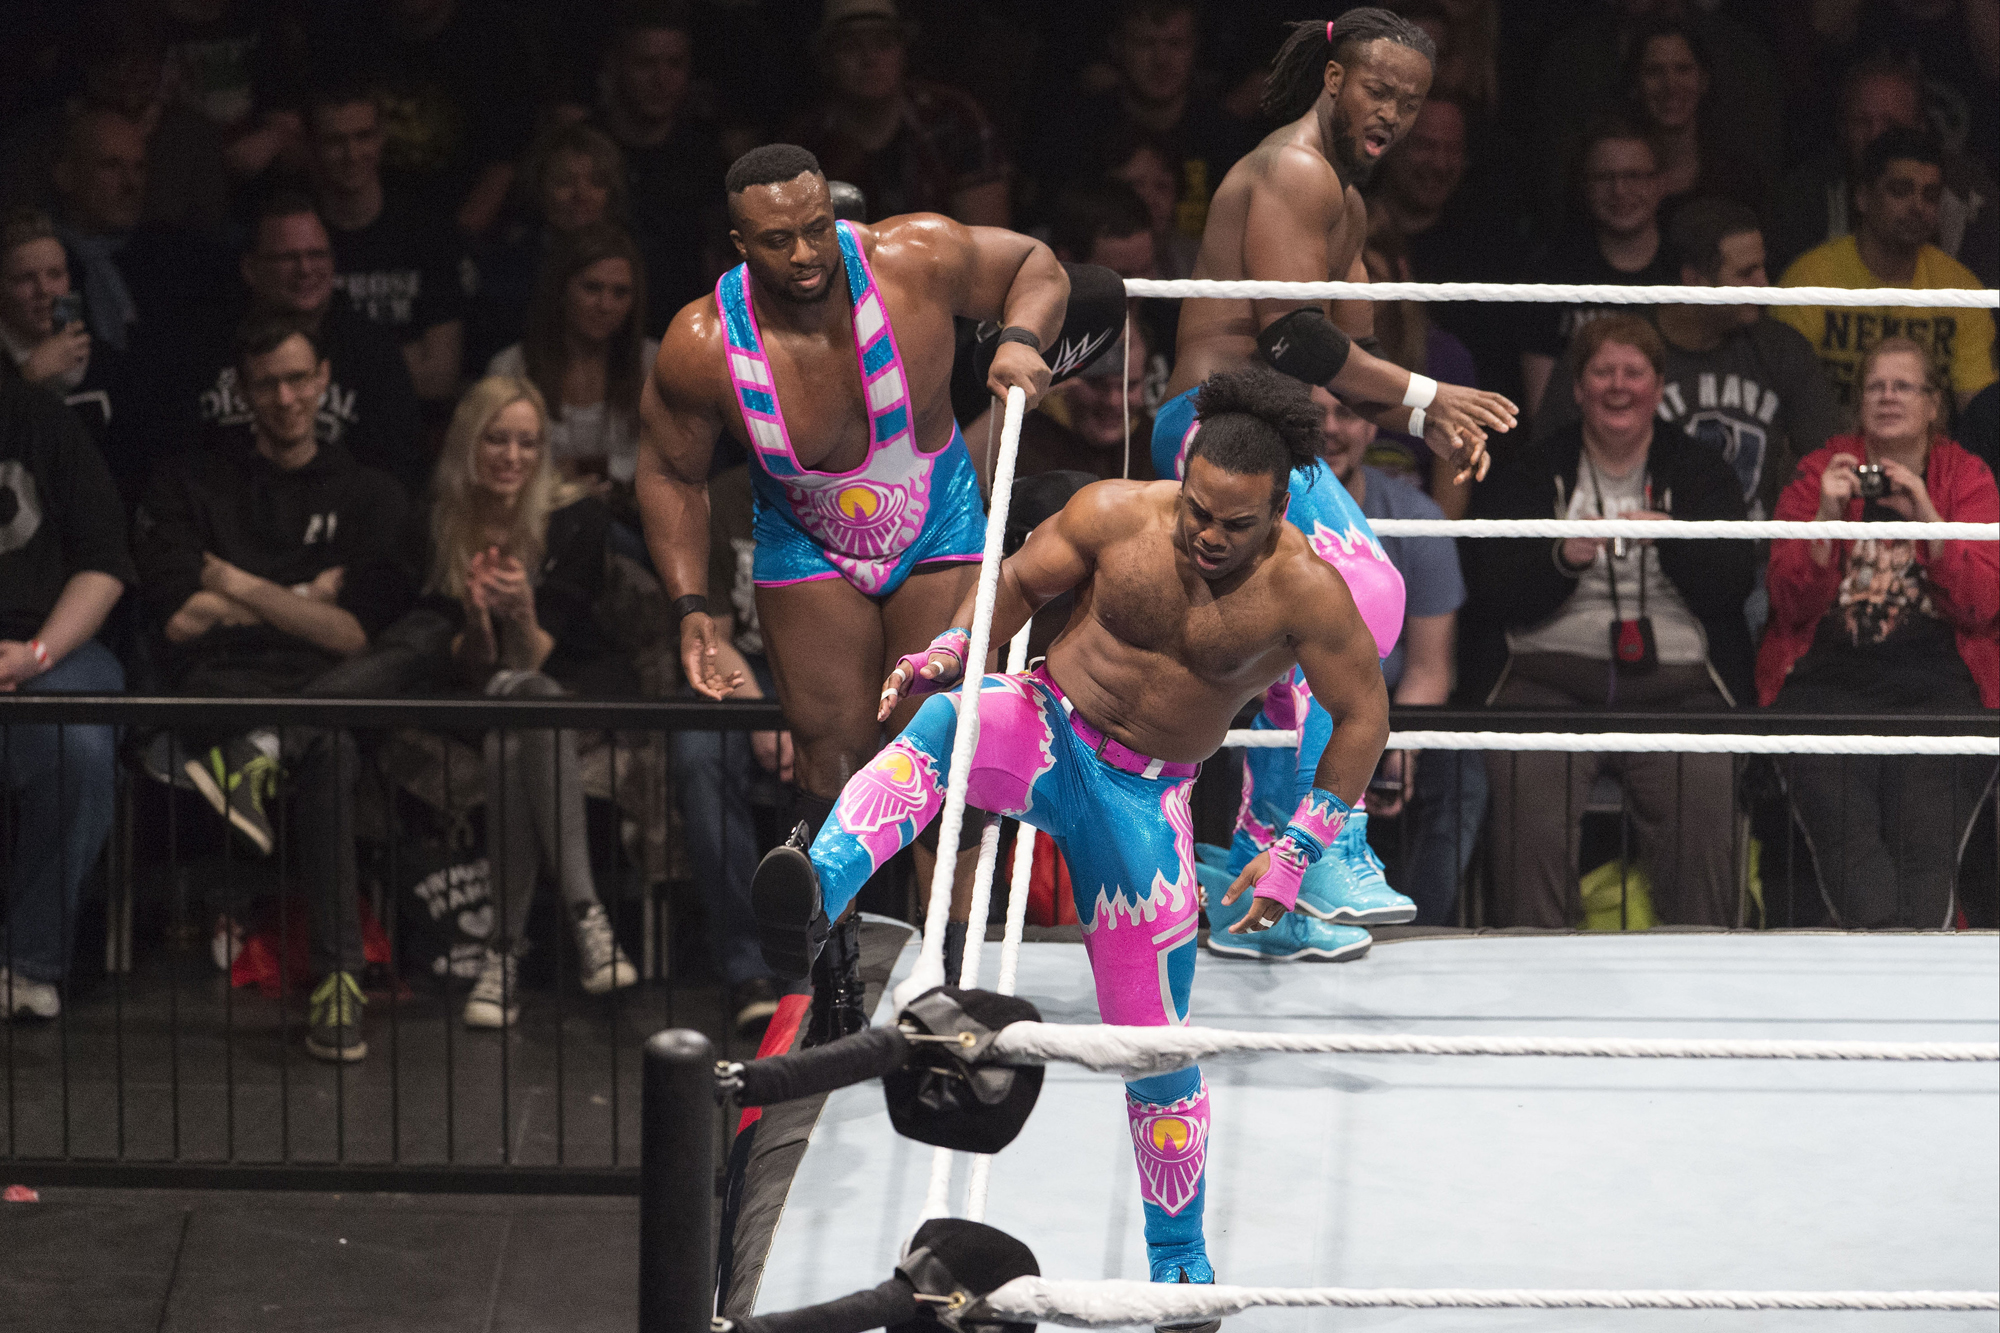 COLOGNE, GERMANY - FEBRUARY 11: The New Day during WWE Road to WrestleMania at the Lanxess Arena on February 11, 2016 in Cologne, Germany. (Photo by Marc Pfitzenreuter/Getty Images)